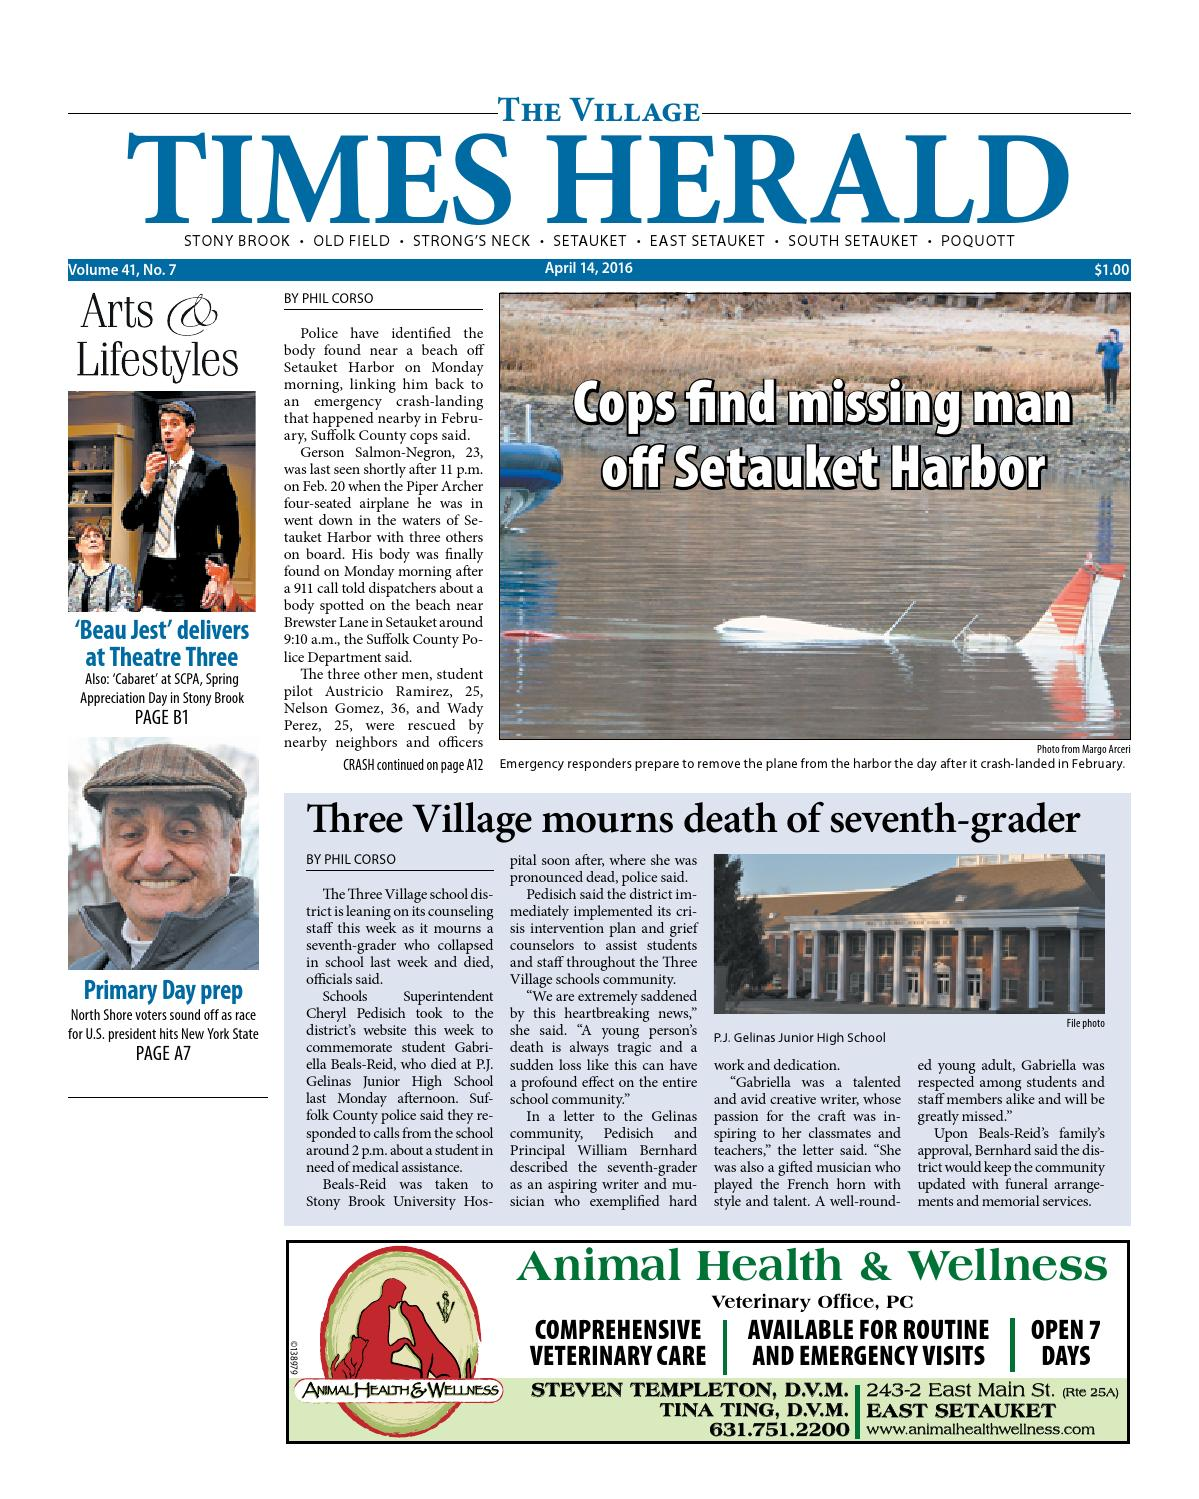 The Village Times Herald - April 14, 2016 by TBR News Media - issuu